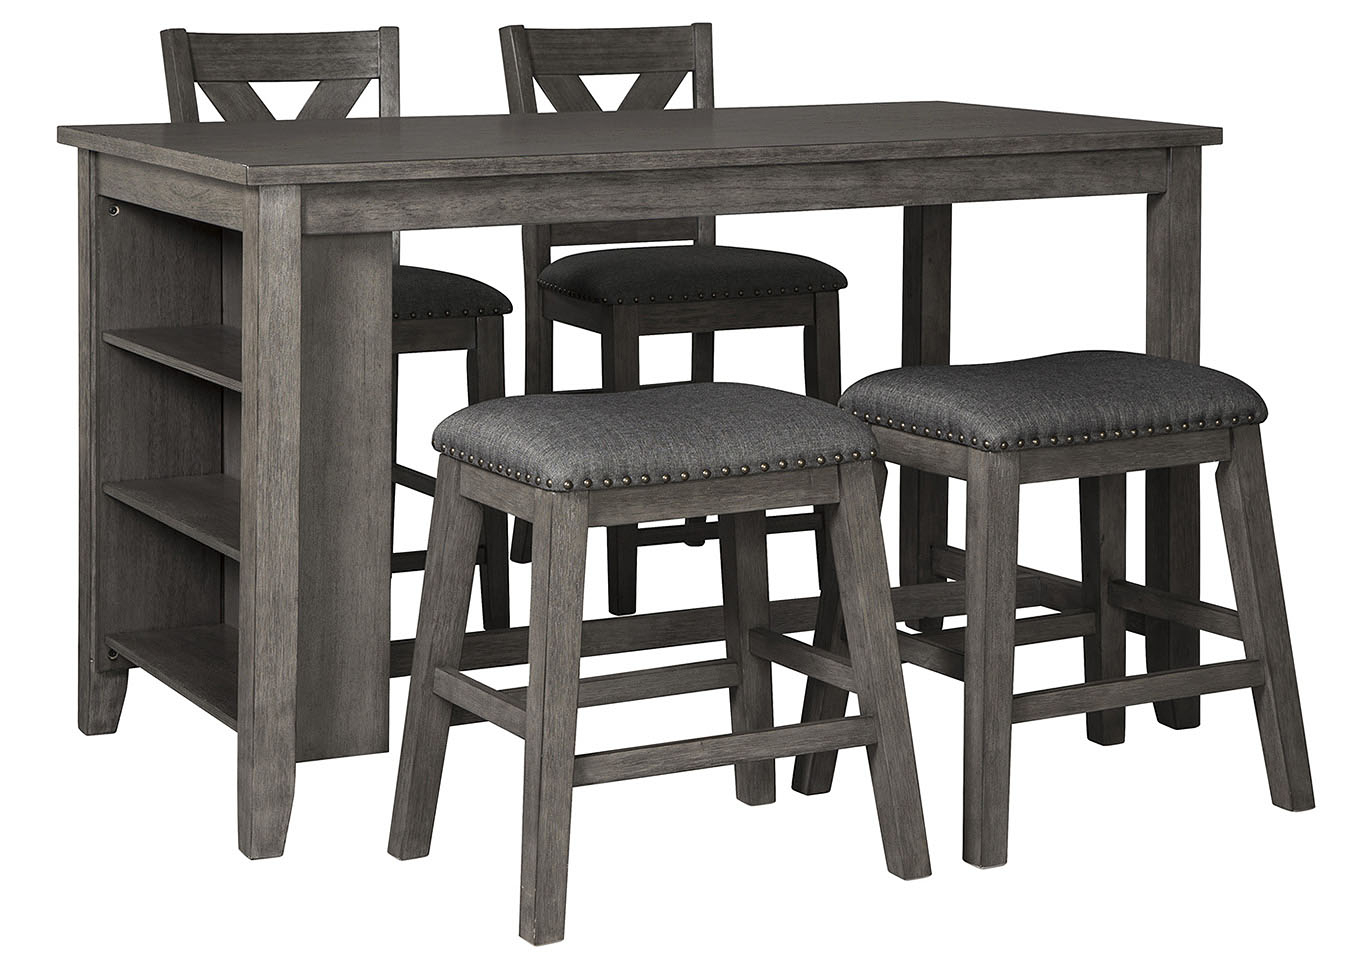 V. Watts Furniture Caitbrook Dark Gray Dining Set W/2 Stools Pertaining To Most Recent Gray Wash Livingston Extending Dining Tables (Photo 18 of 25)